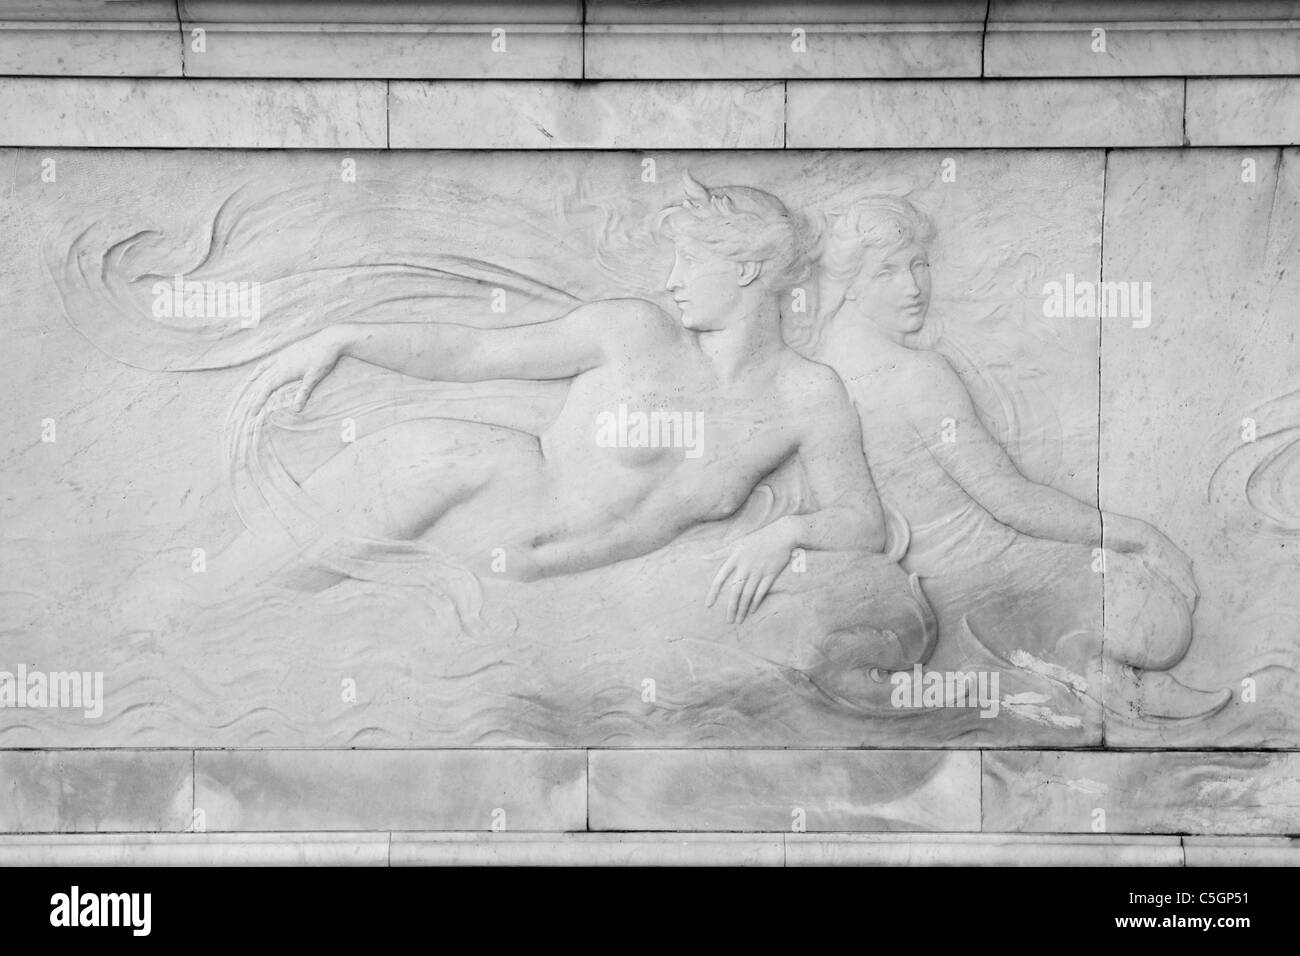 Languid sea nymphs ride stylised dolphins on the Victoria Memorial in London  - bass relief in white marble - Stock Image